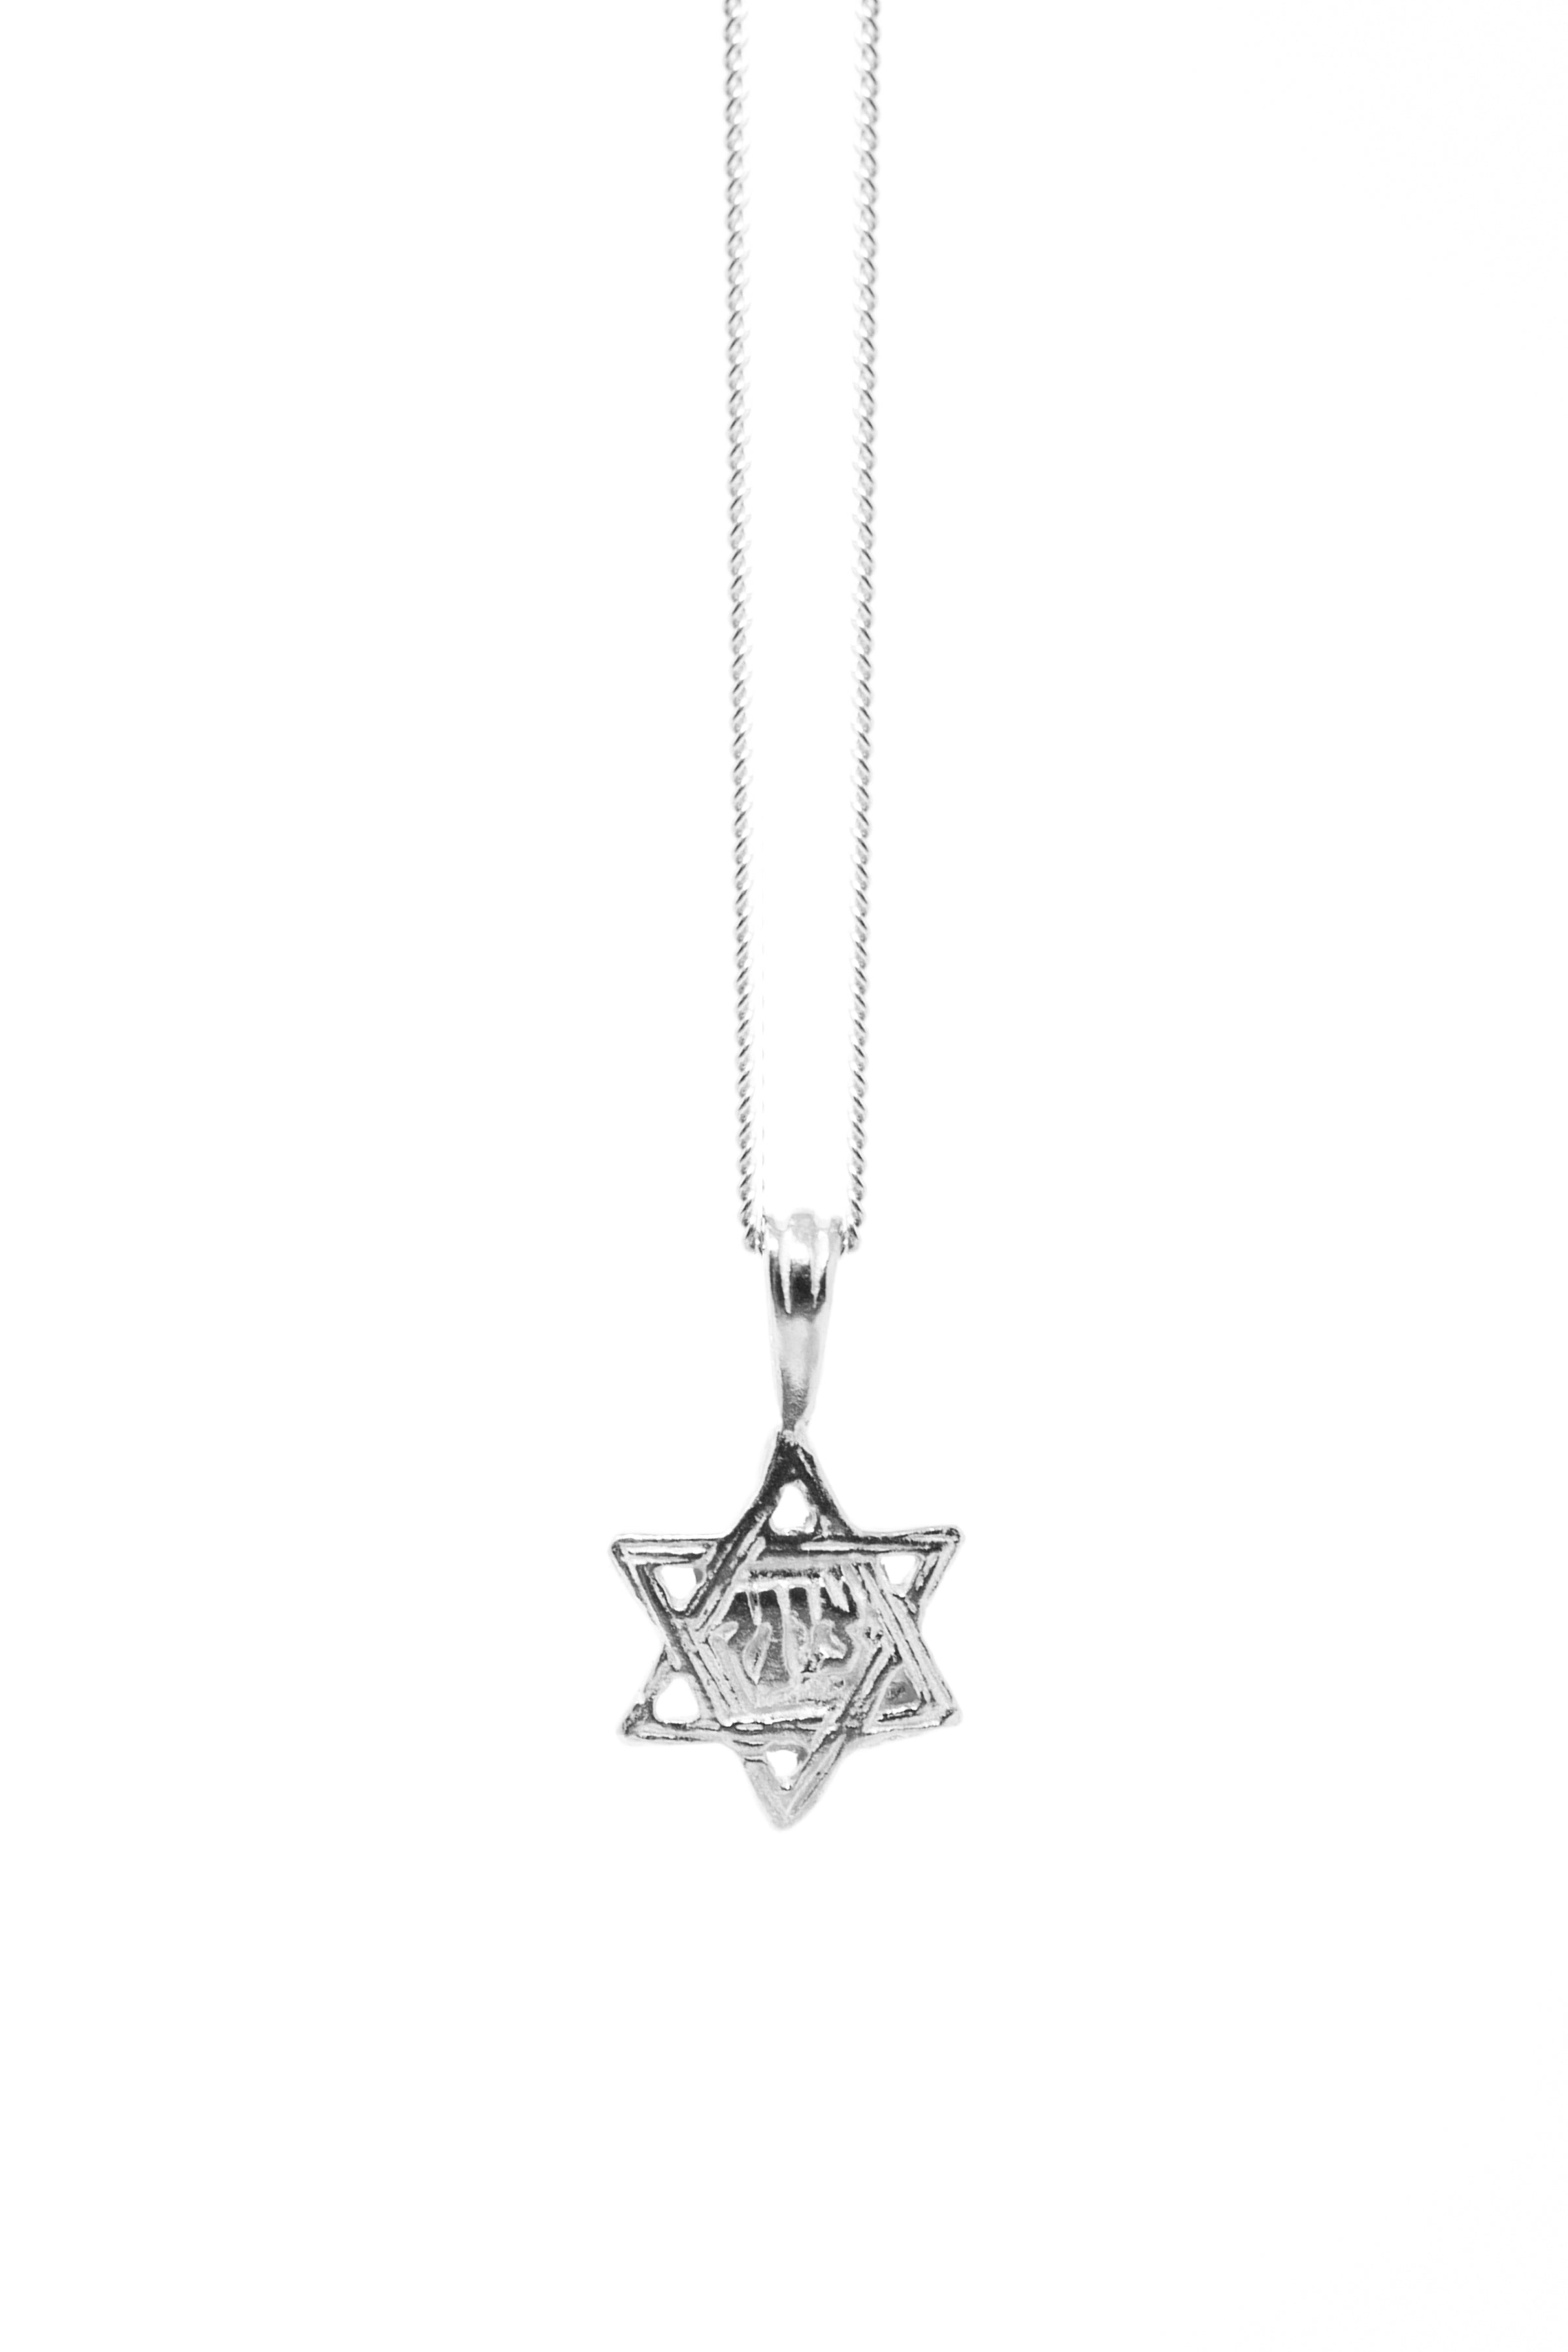 THE STAR of David Necklace I